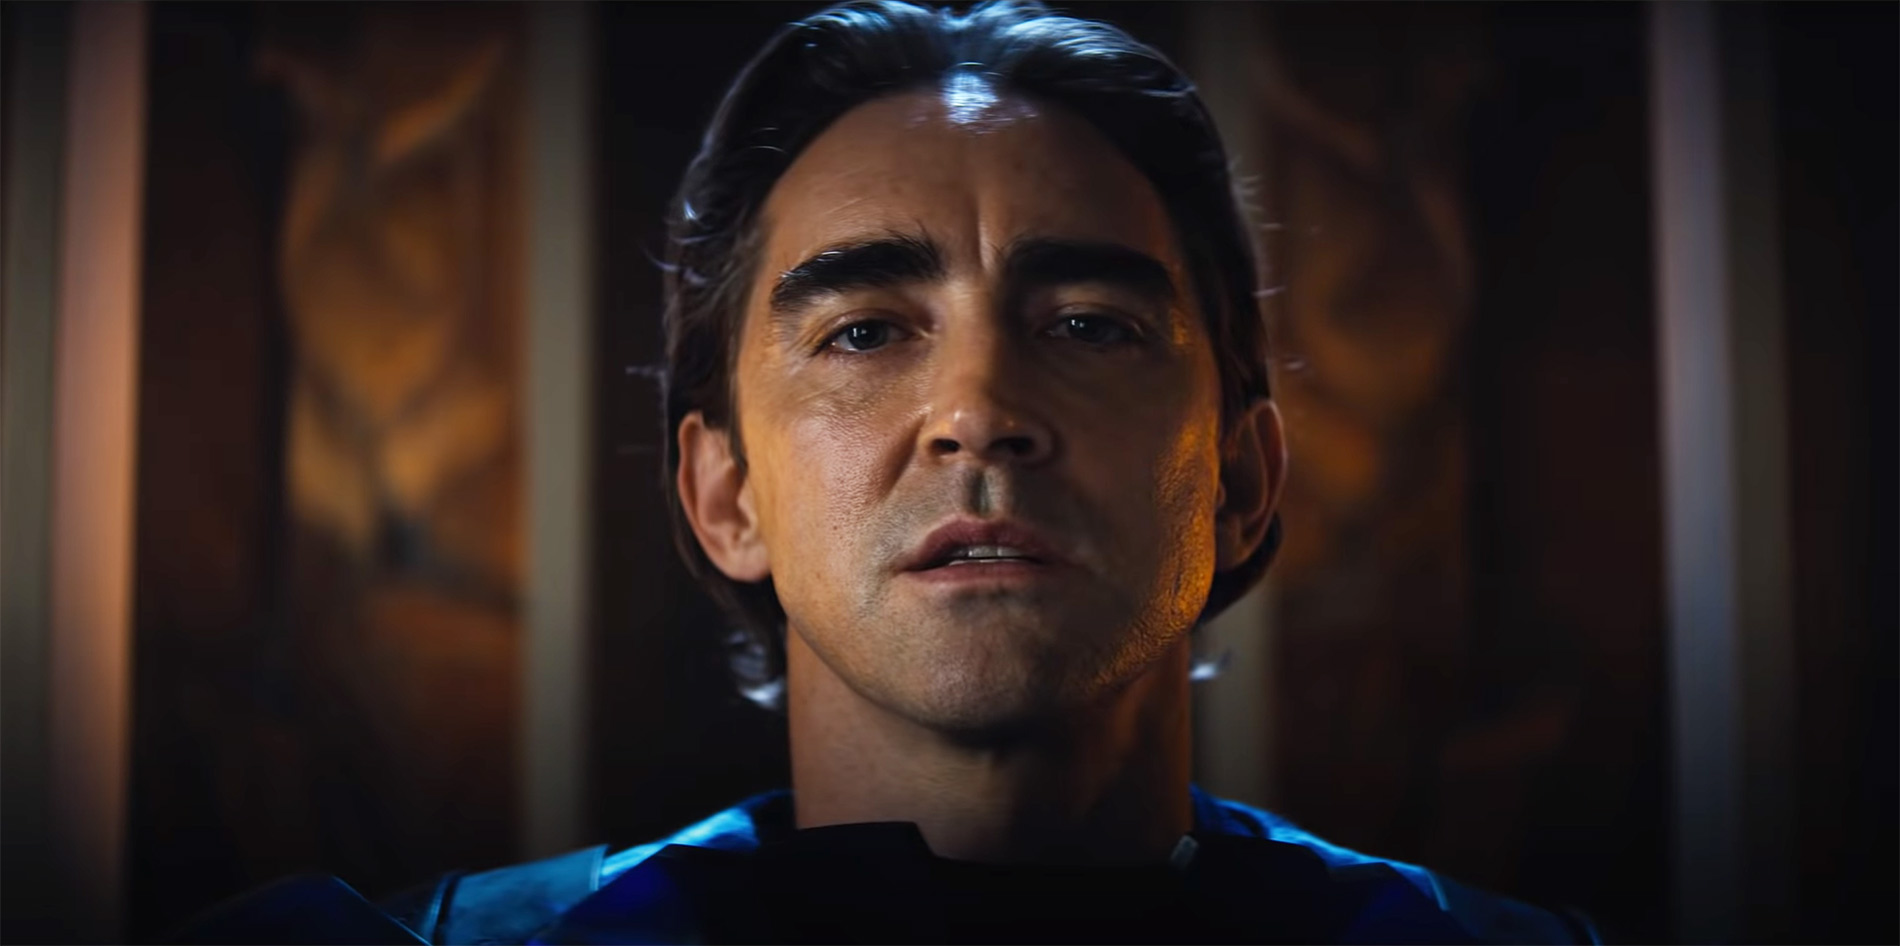 Foundation Trailer: A New Look at Apple TV+'s Epic Sci-Fi Series